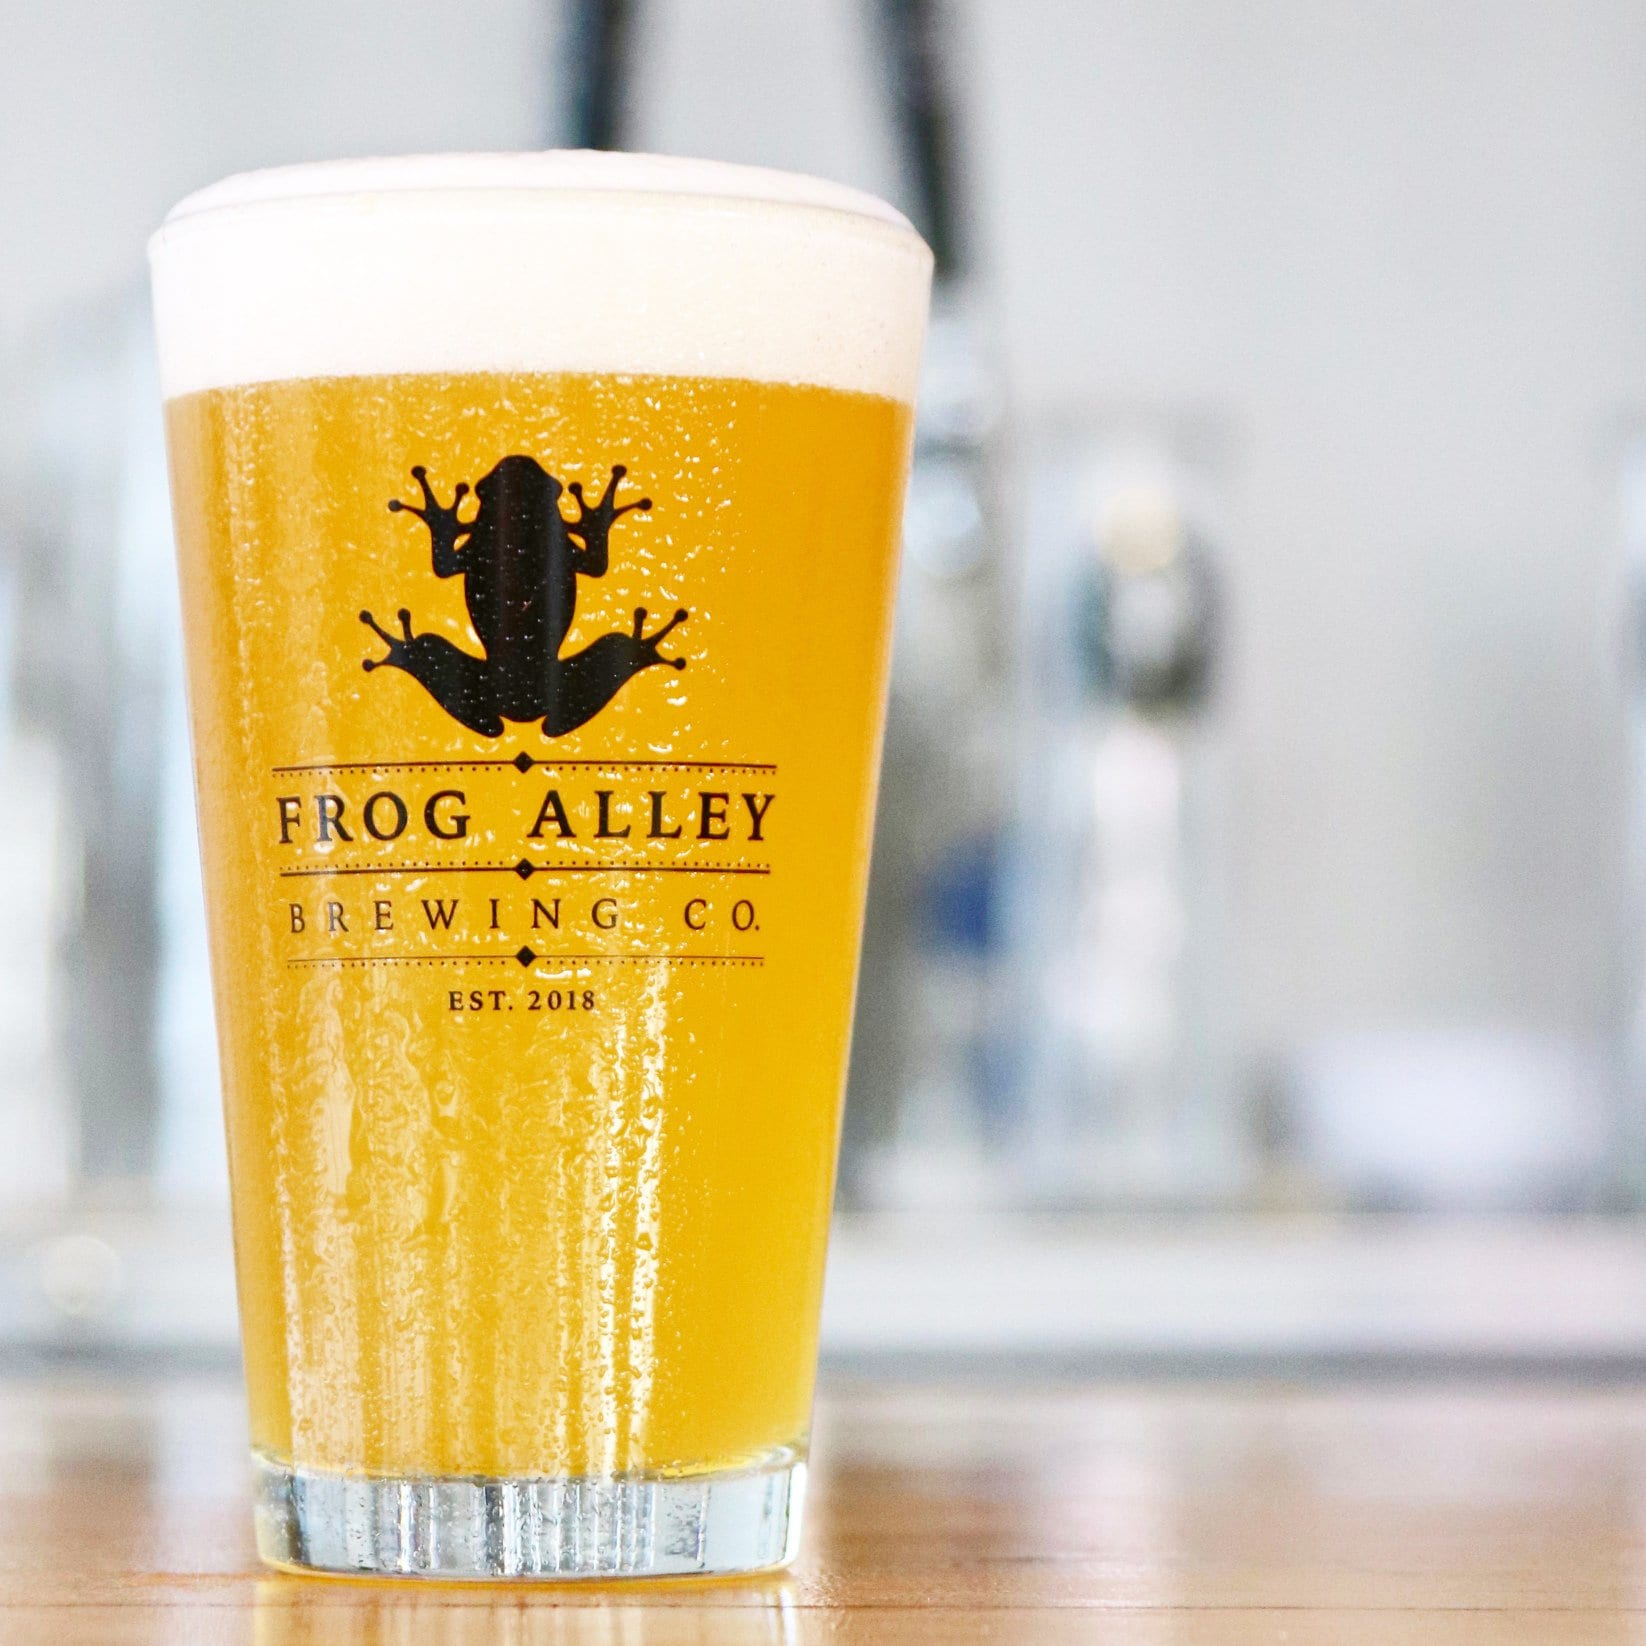 Frog Alley Brewing